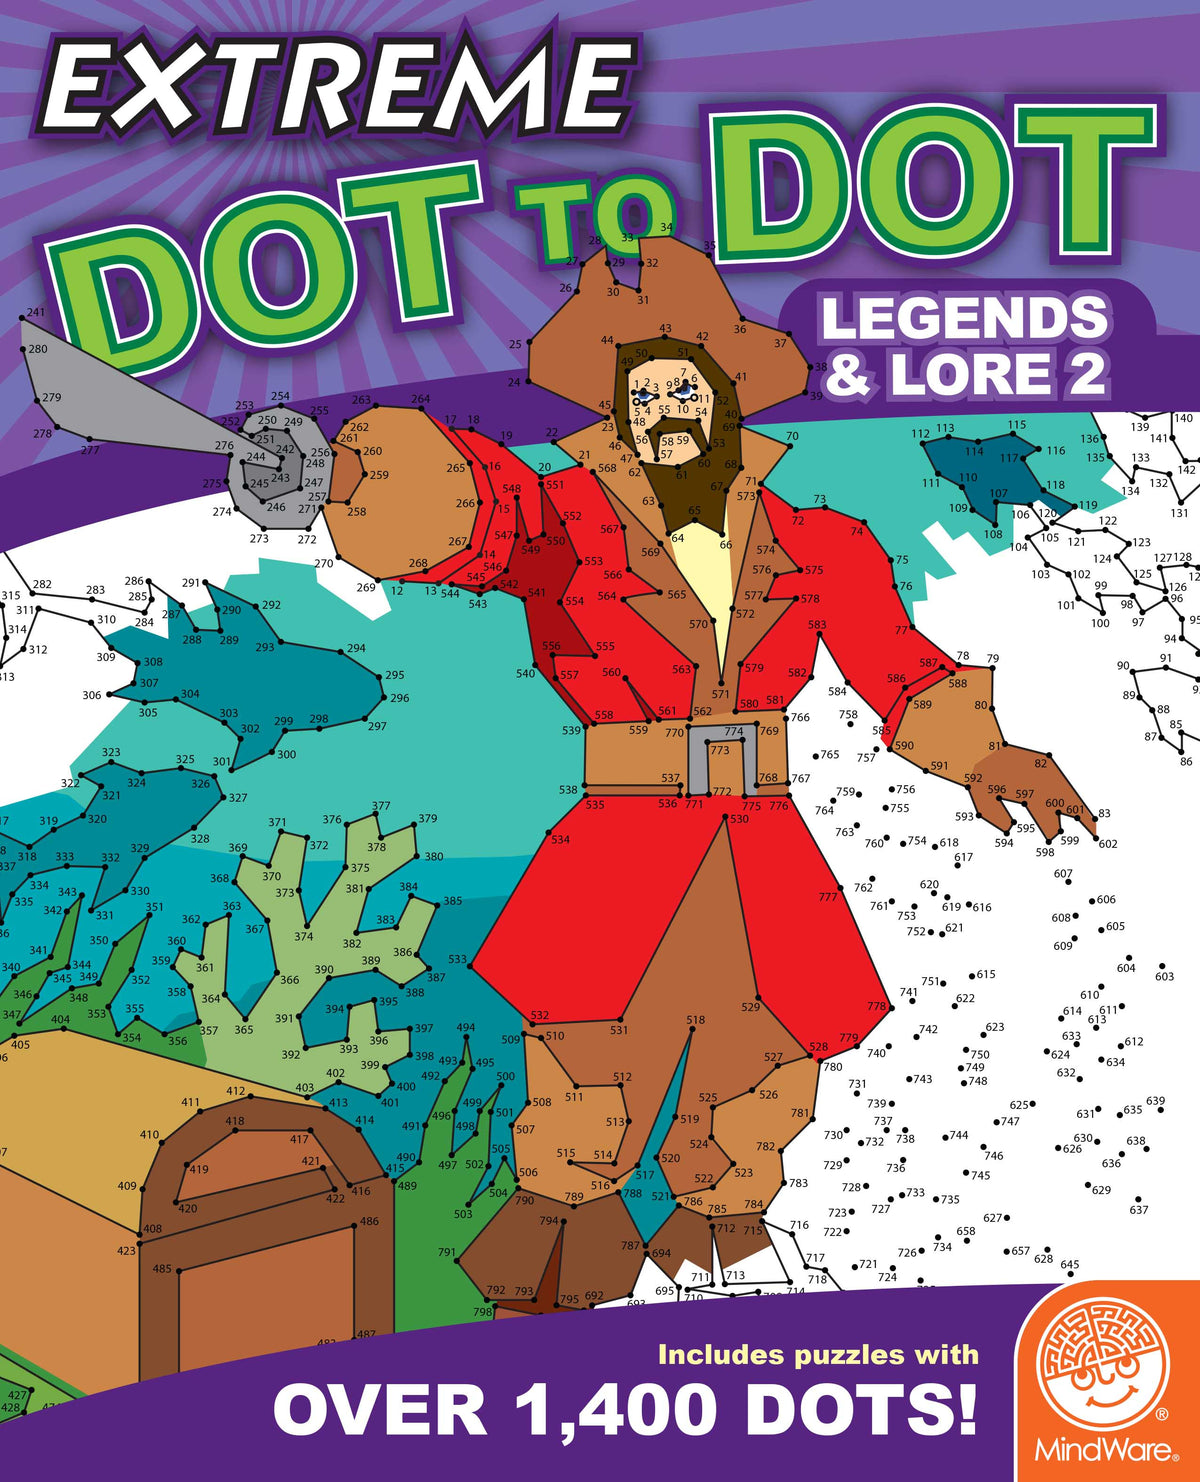 Extreme Dot to Dot - Legends & Lore 2